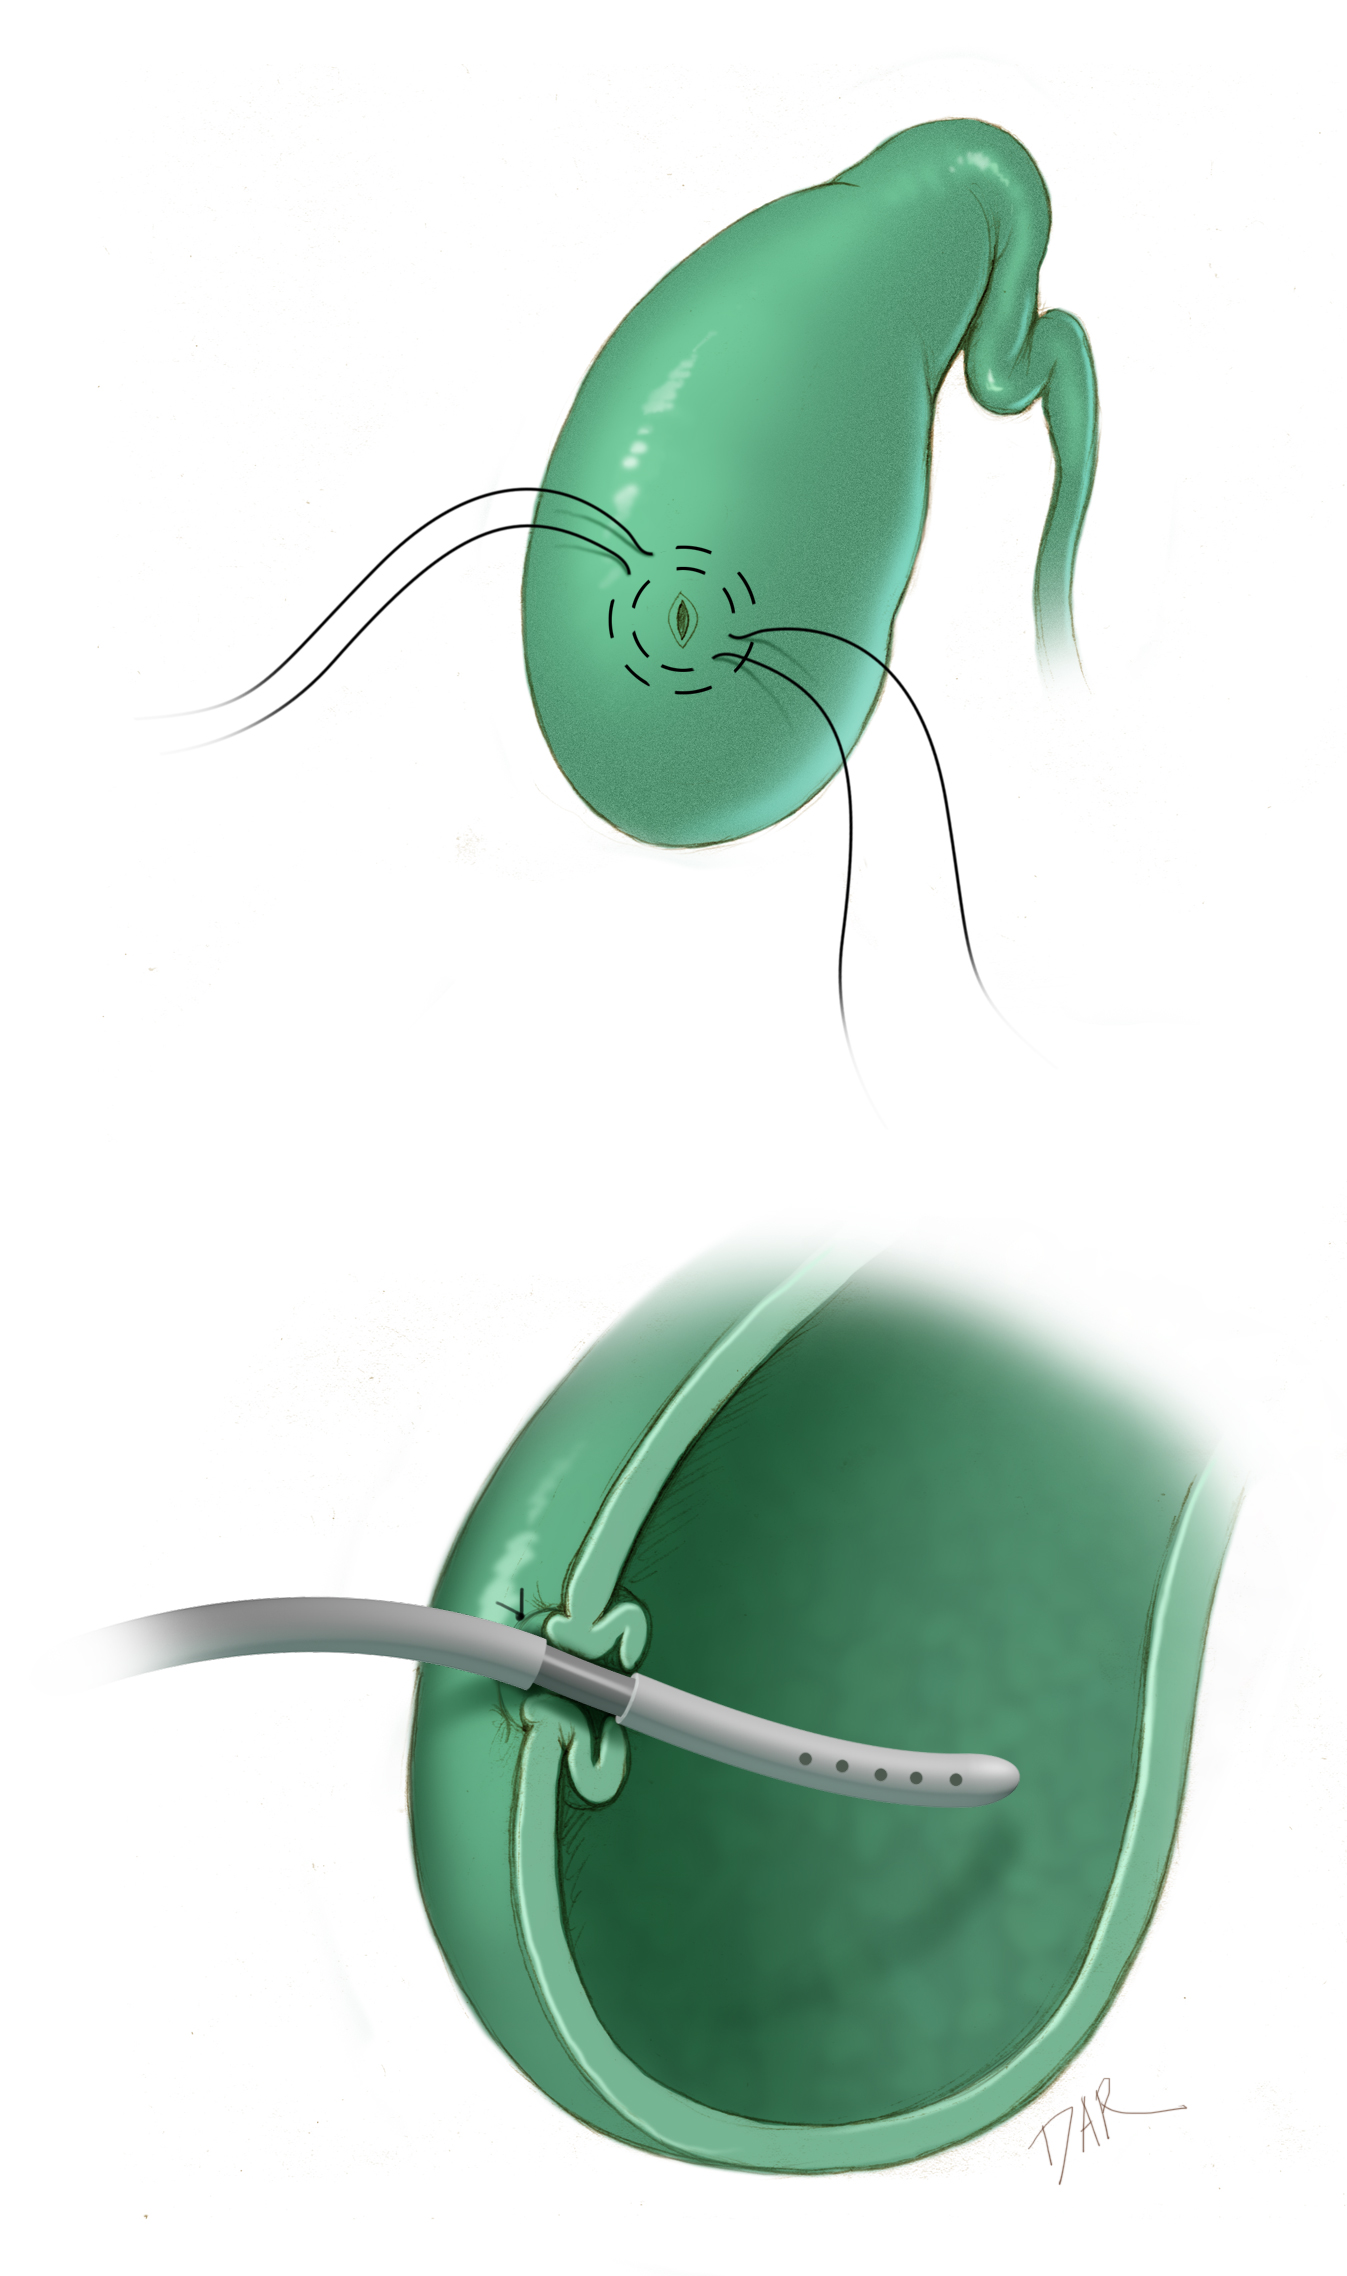 Figure 2:  Two concentric purse-string sutures are placed in the dome of the gallbladder, one inside the other. A puncture is made in the center for placement of the distal catheter. The purse-string sutures are tightened around the metallic straight connector, thus fastening the distal catheter to the gallbladder wall and inverting the wall for a secure seal.